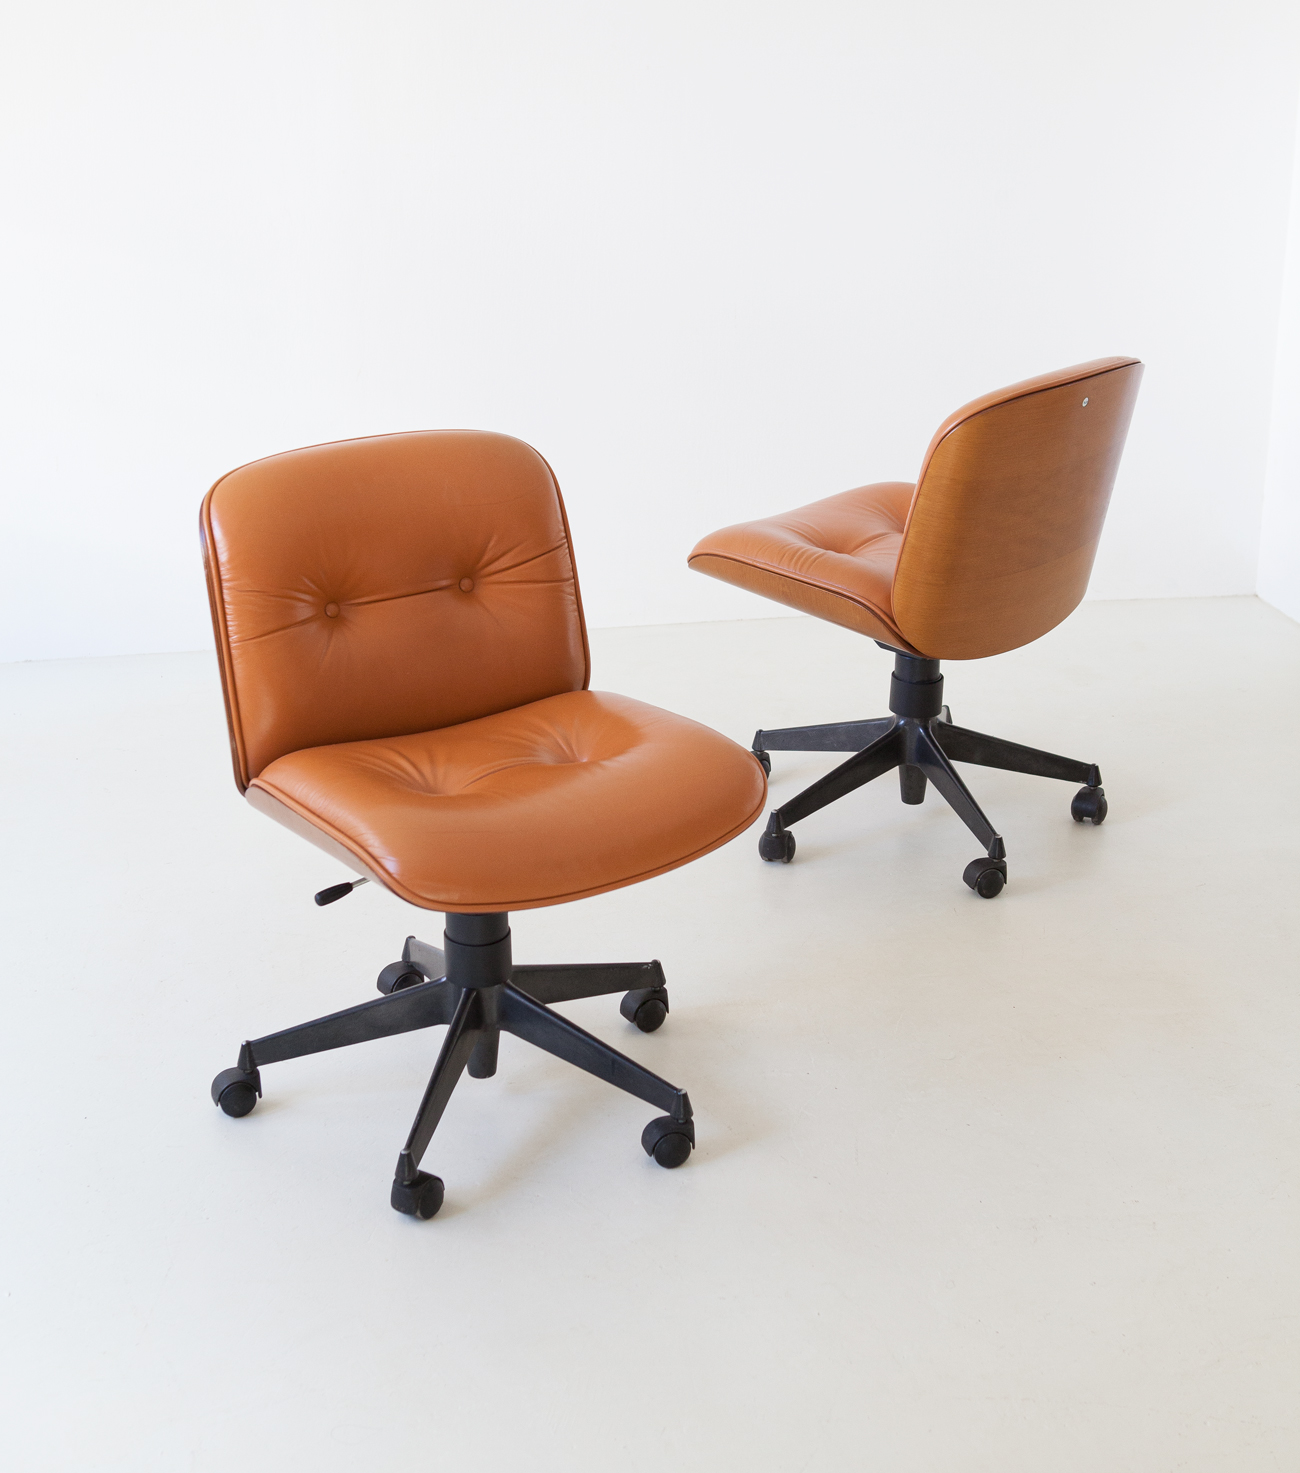 1960s-swivel-desk-chairs-by-ico-parisi-for-mim-3-SE317